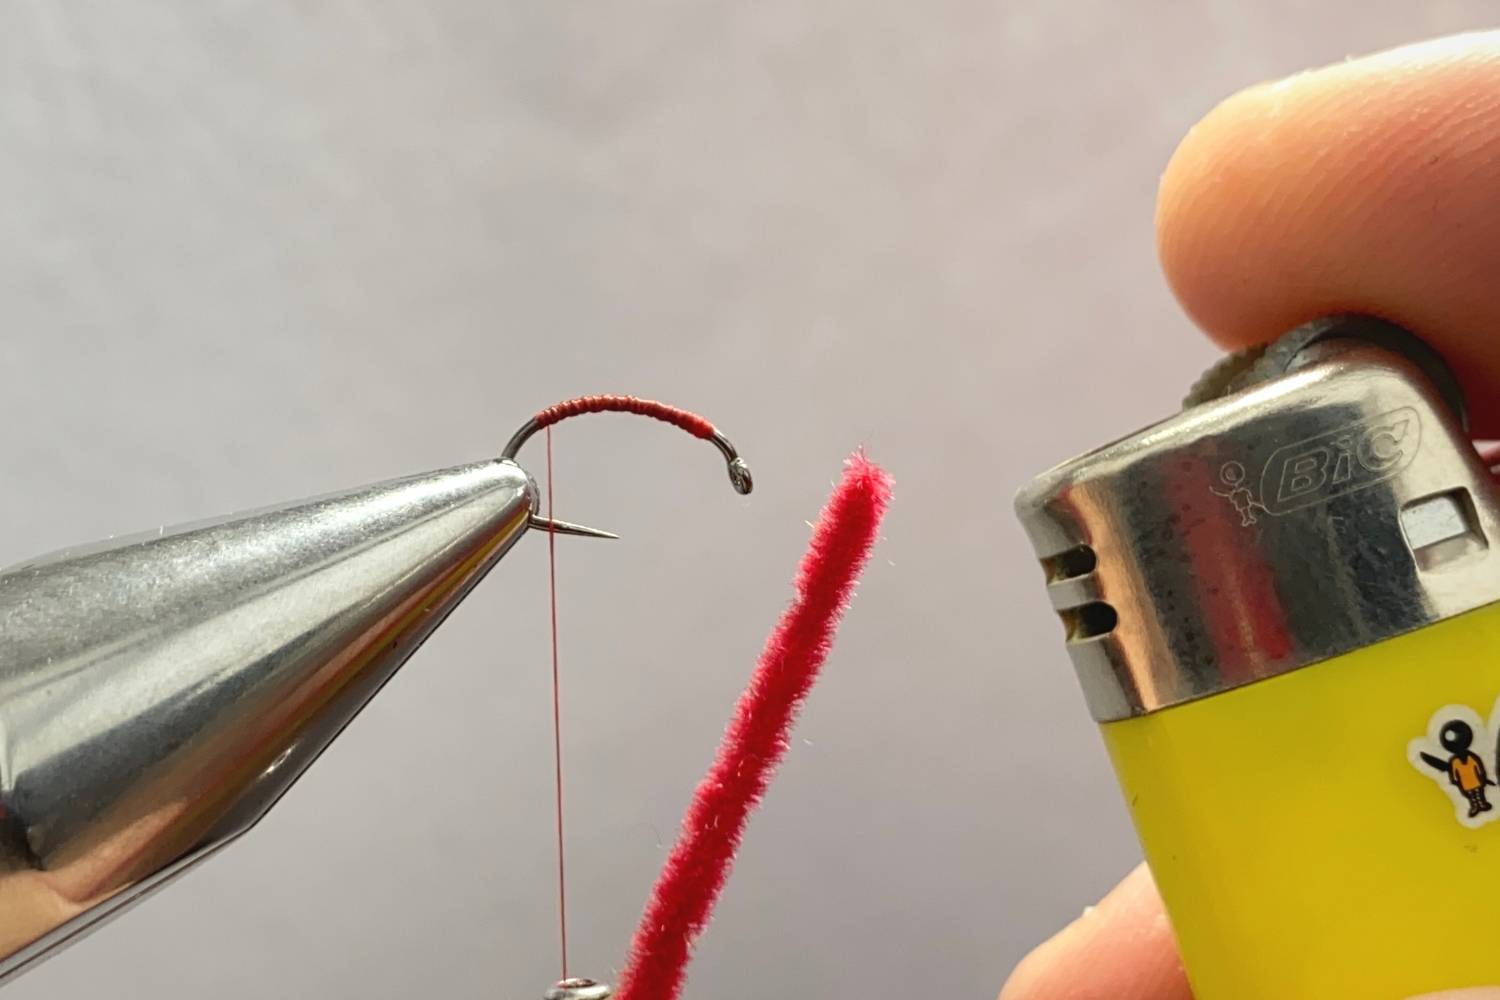 How to tie a San Juan worm fly step 3